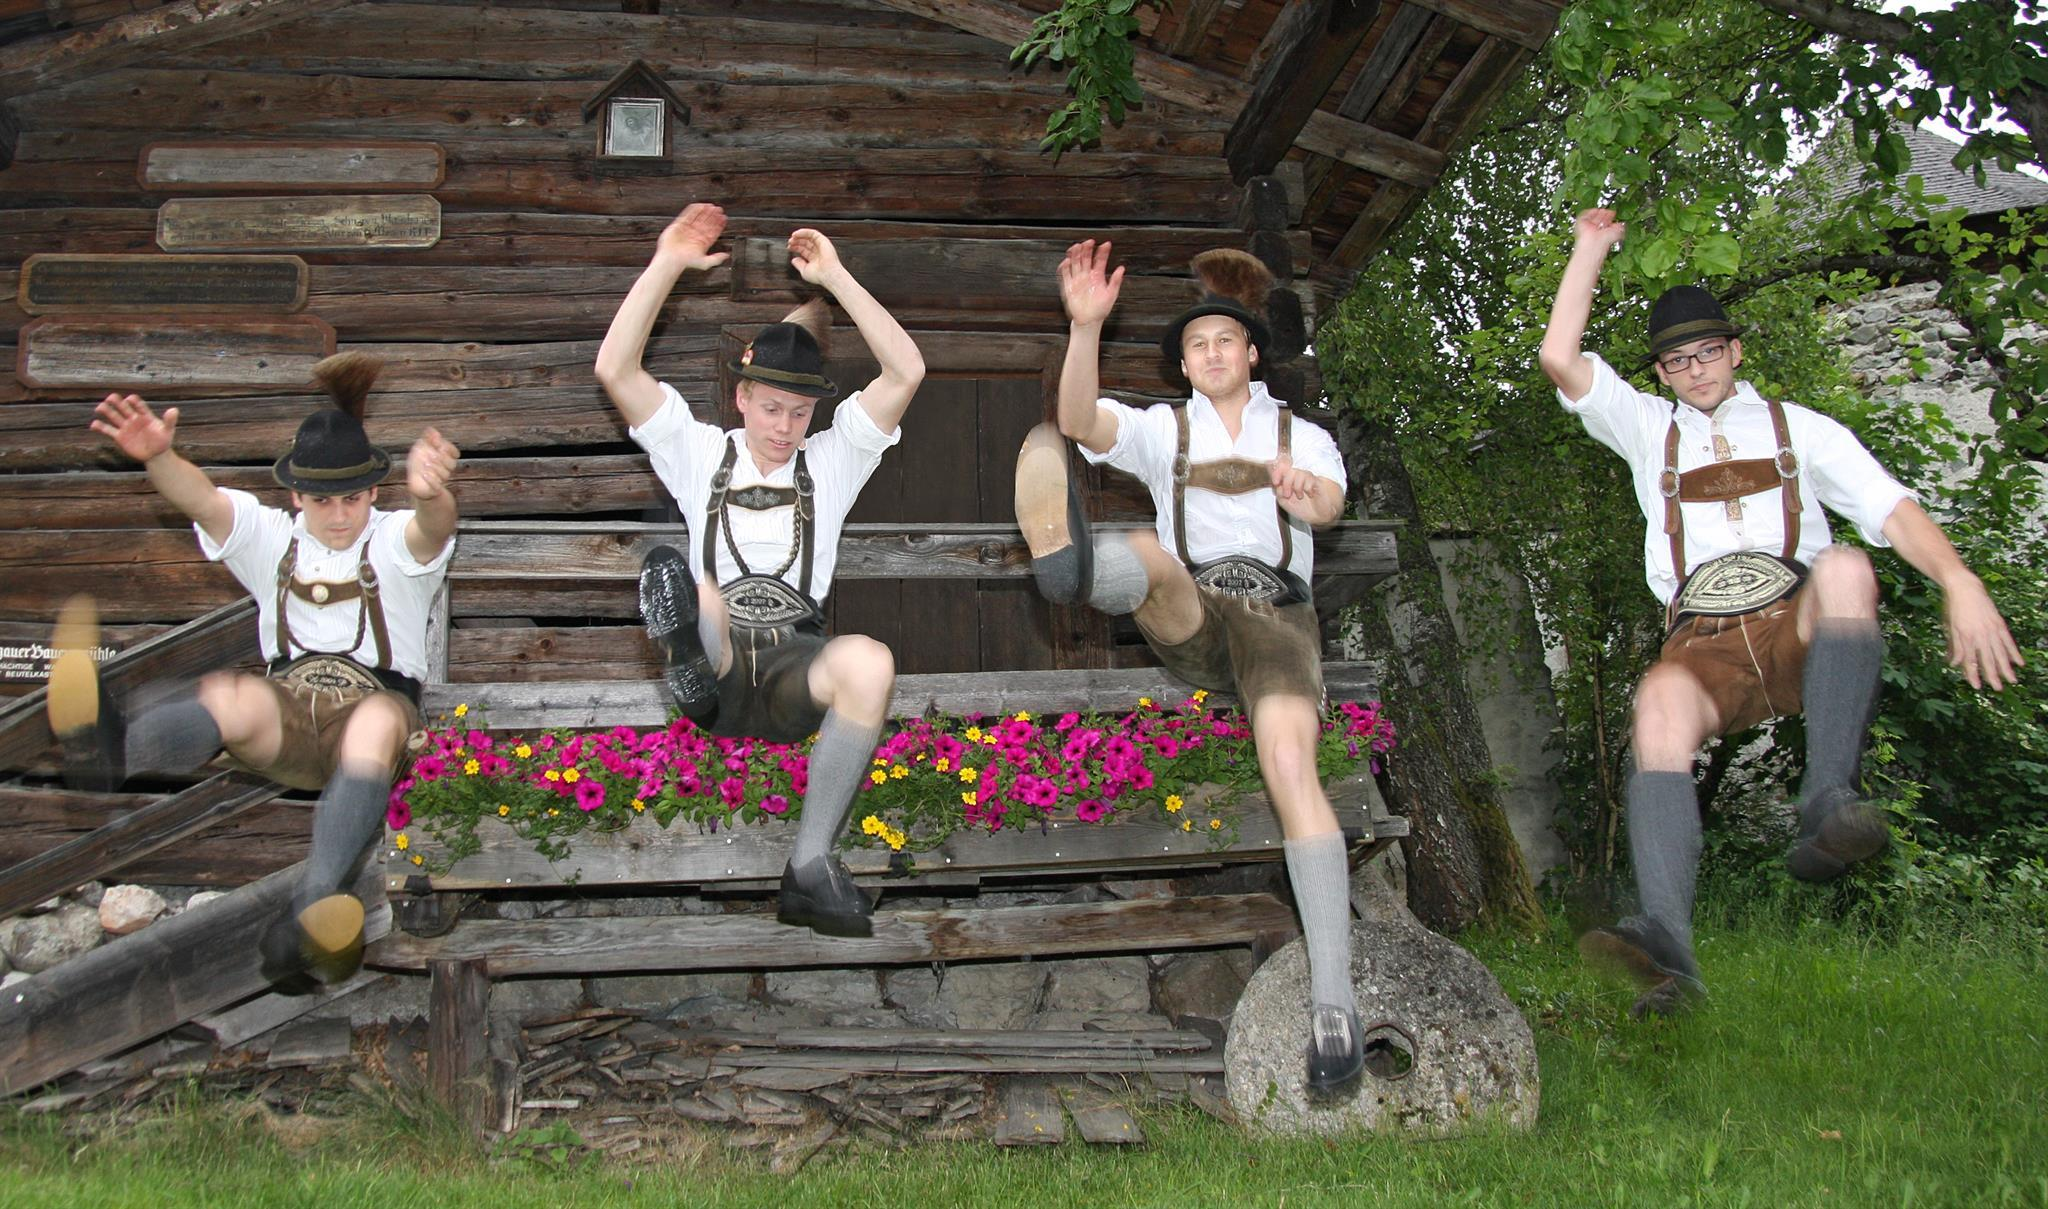 Traditional evening at the castle Kaprun - 18/08/2020, from 8:00 PM